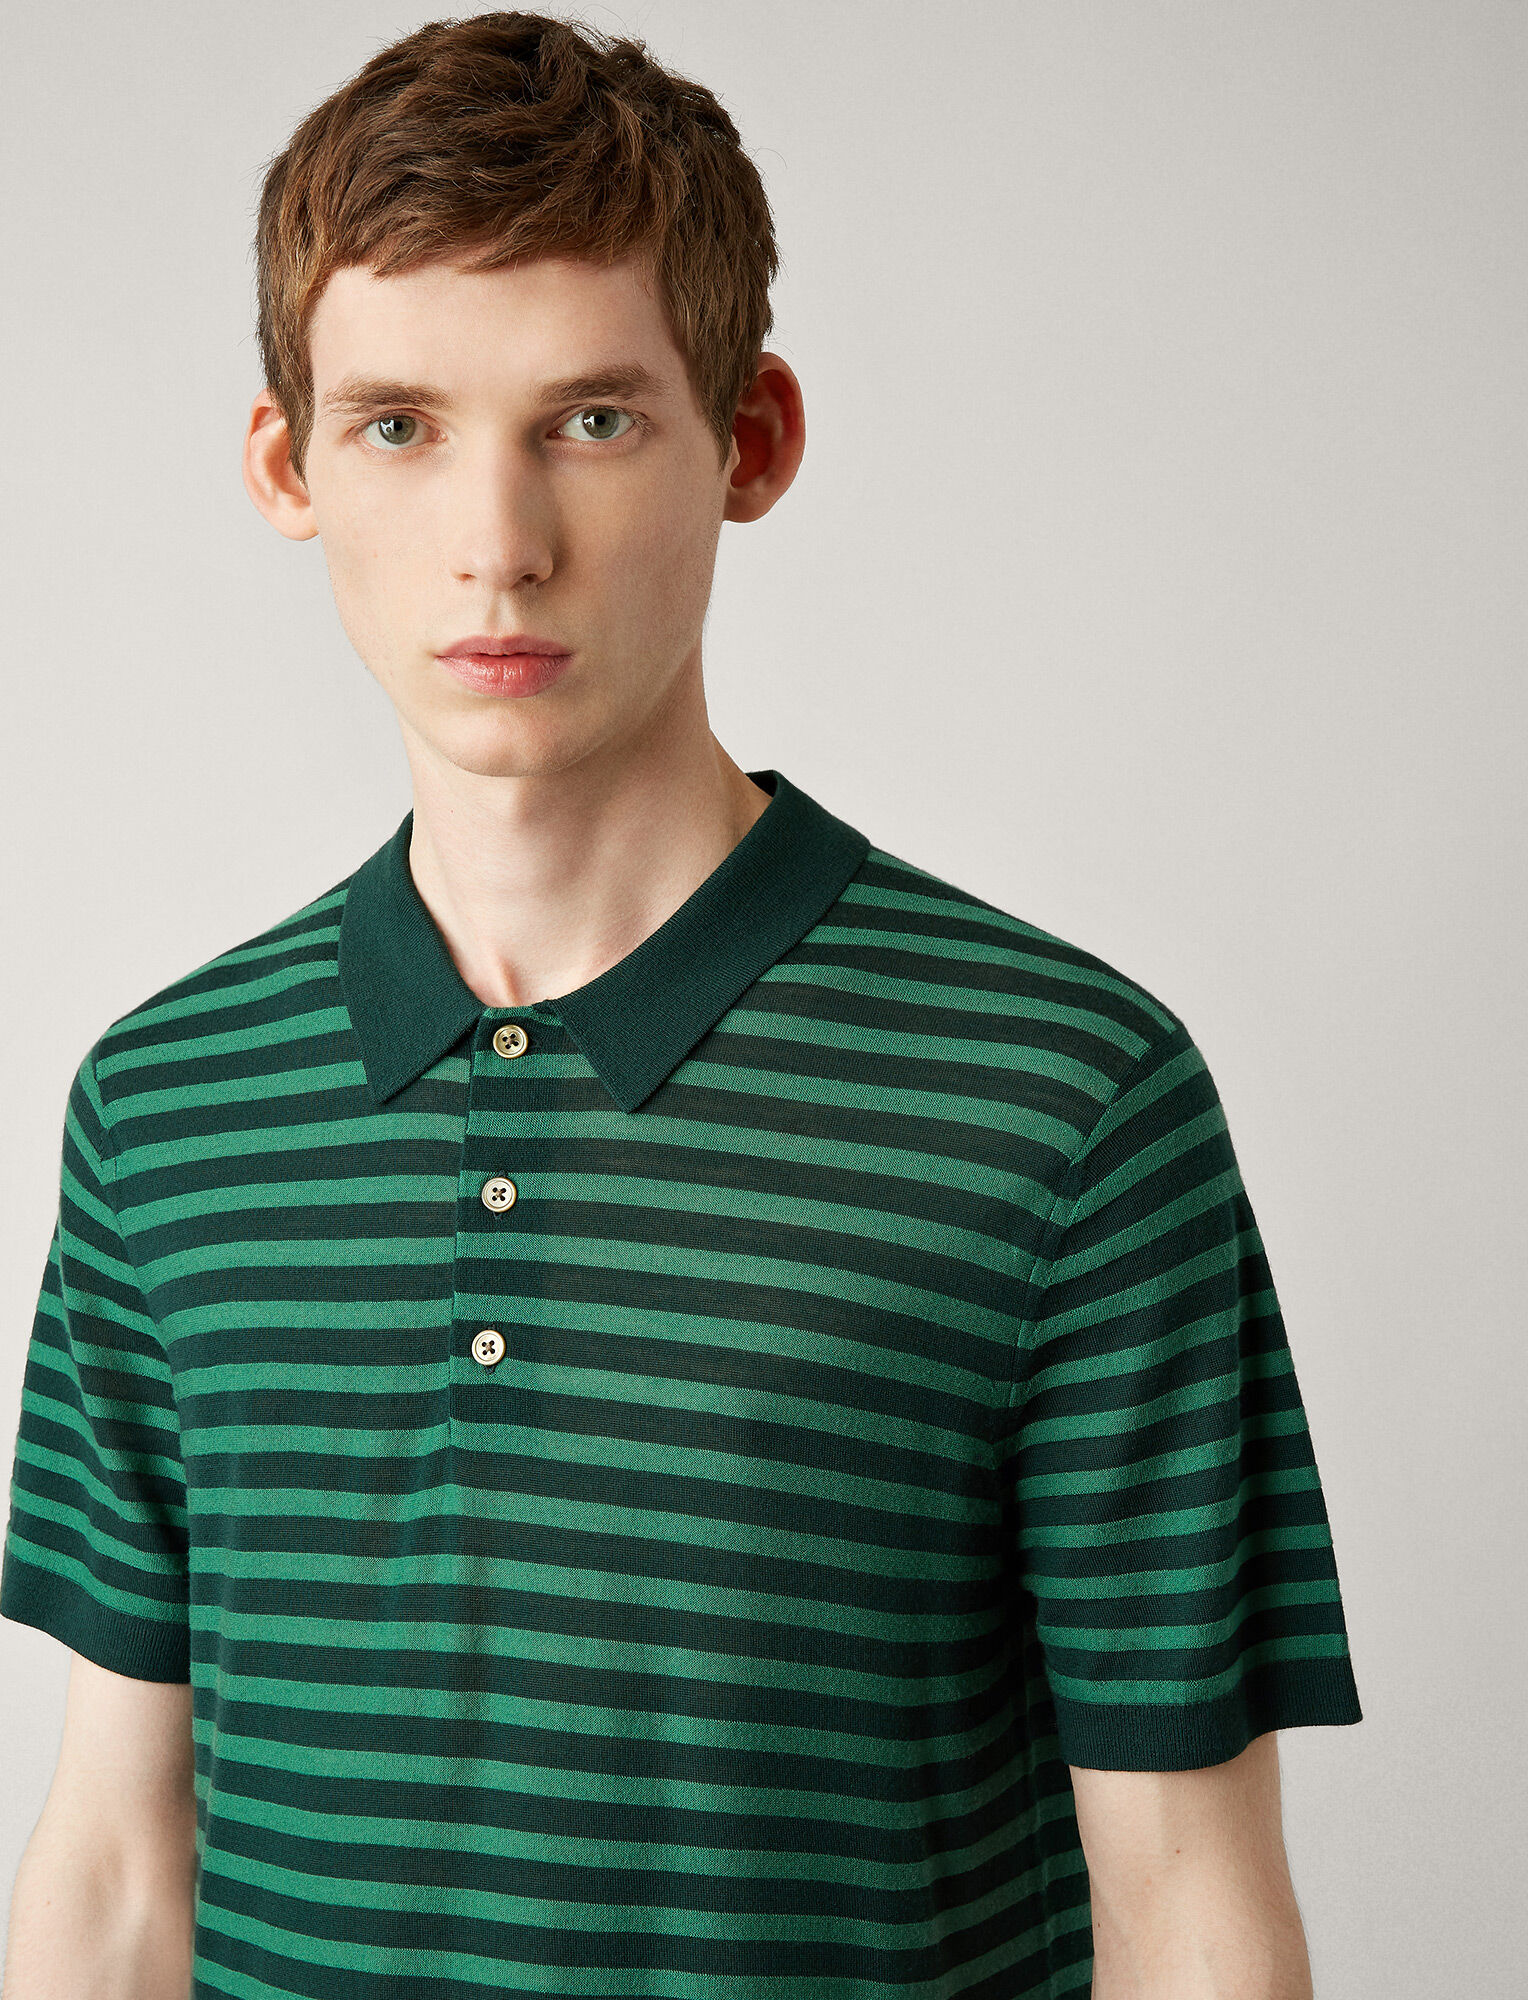 Joseph, Polo Light Stripe Merinos Knit, in FOREST